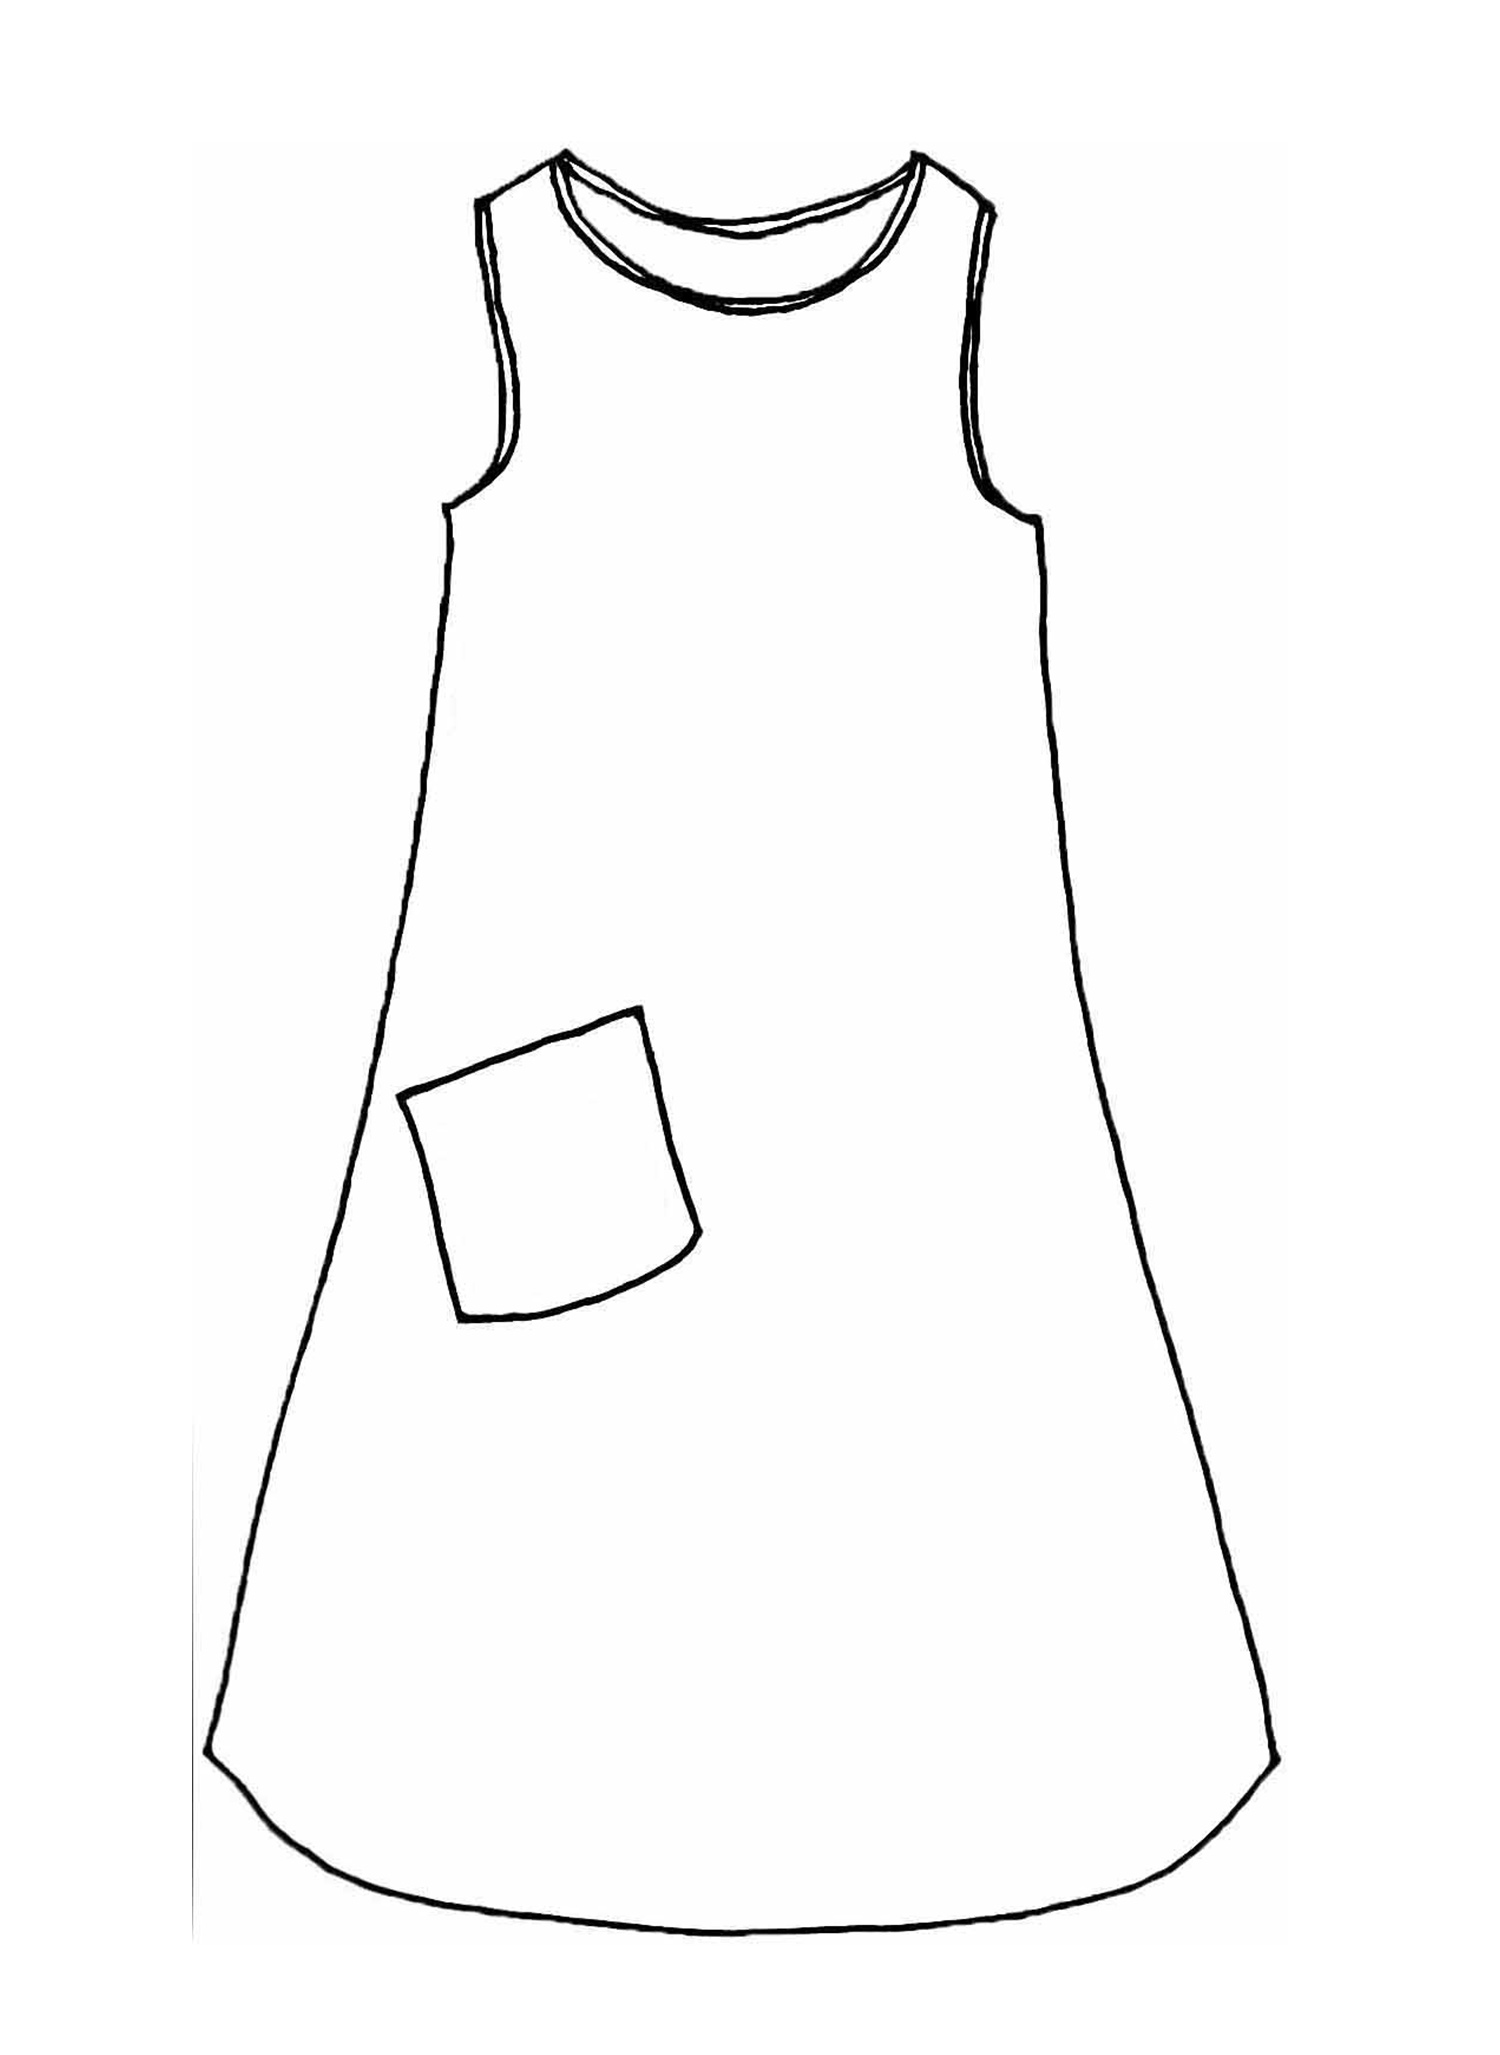 Riverwalk Dress sketch image